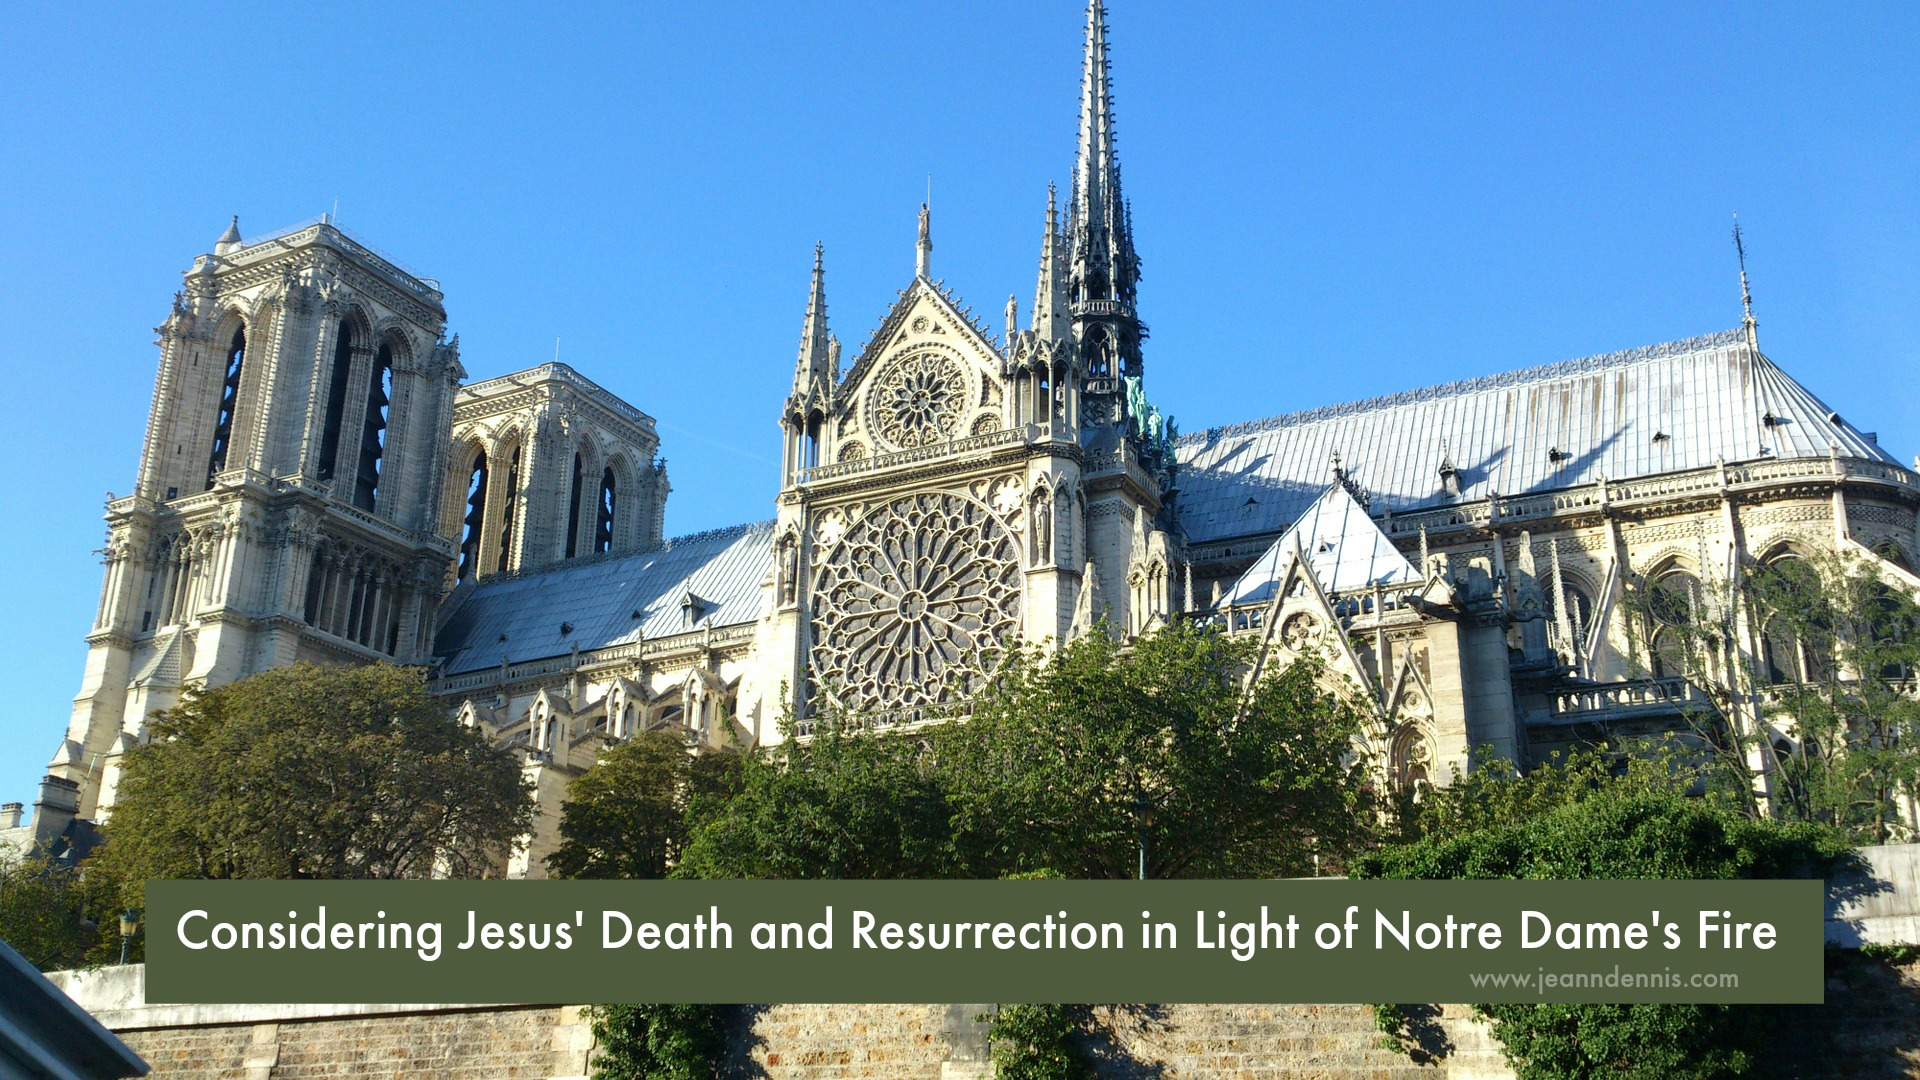 Considering Jesus' Death and Resurrection in Light of Notre Dame's Fire